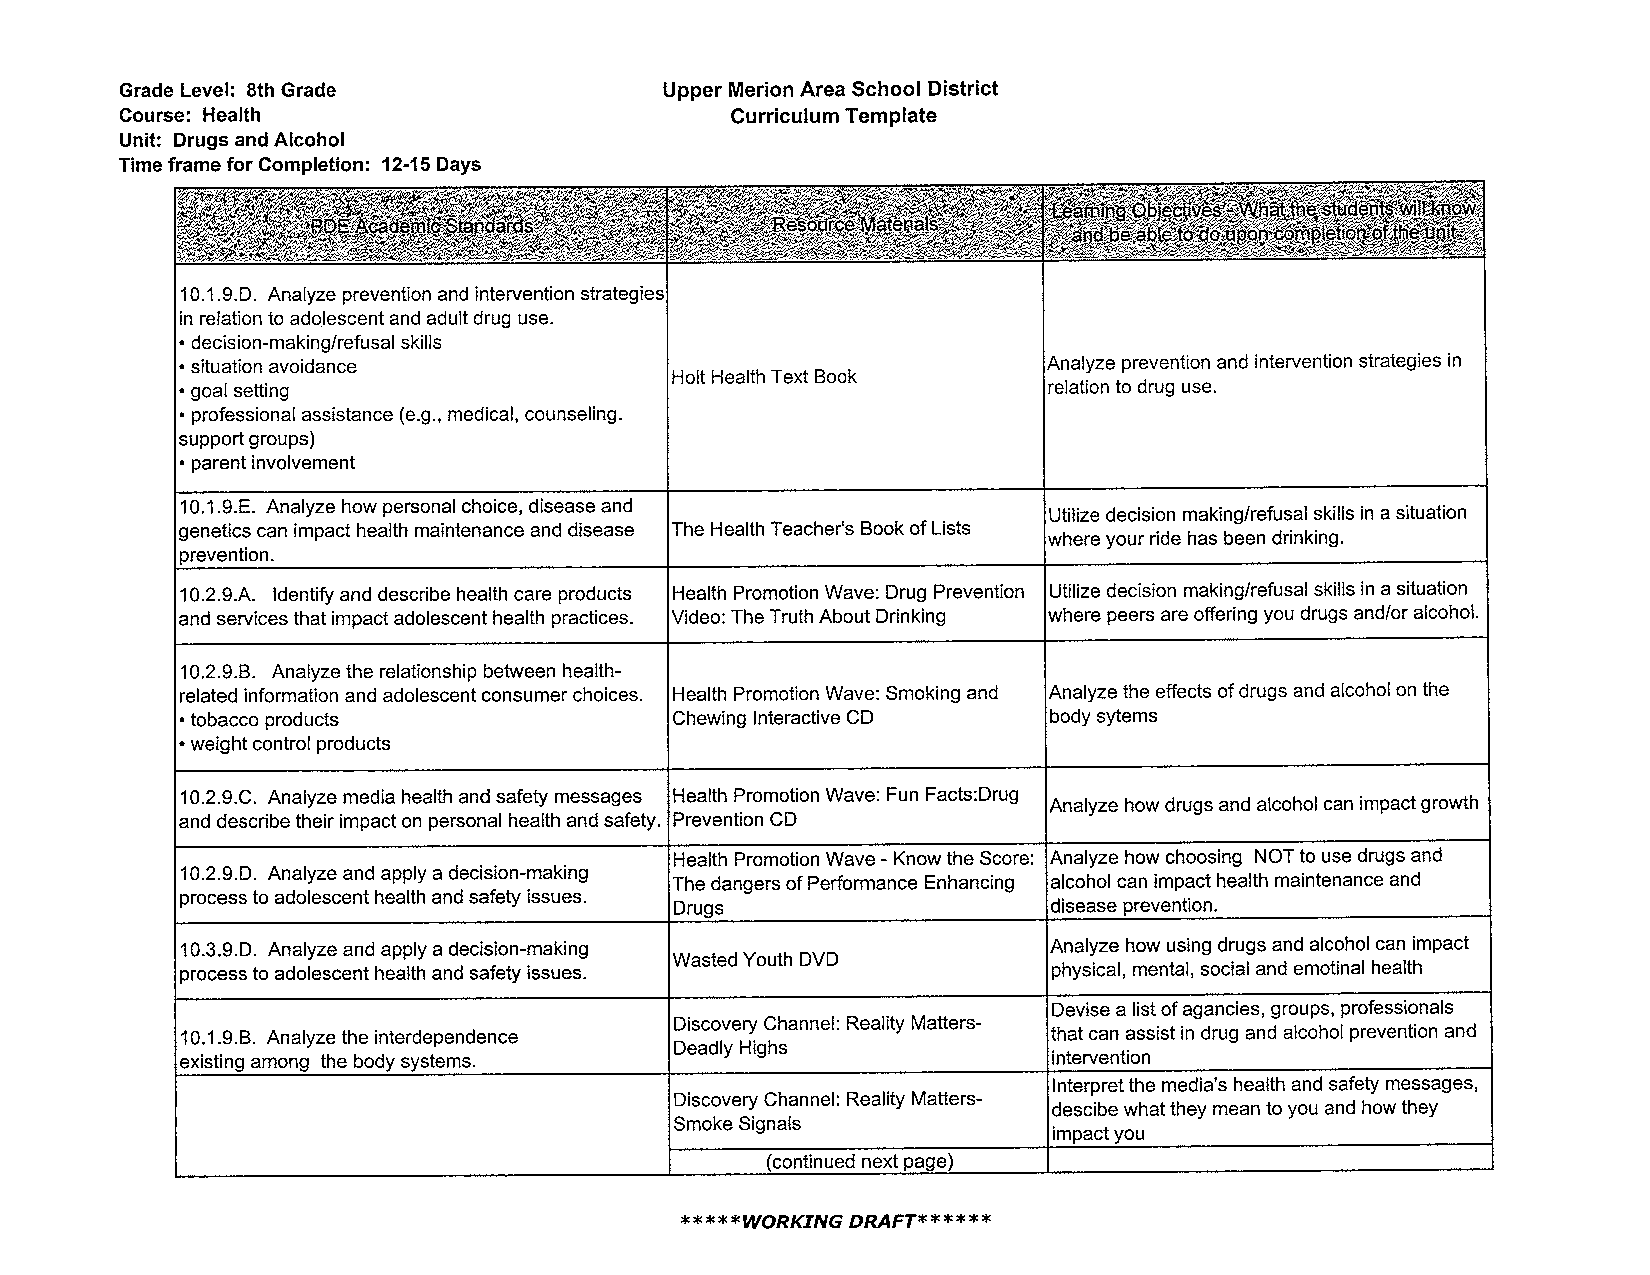 worksheet Mental Health Group Worksheets mental health group activity worksheets worksheet between sessions for s group